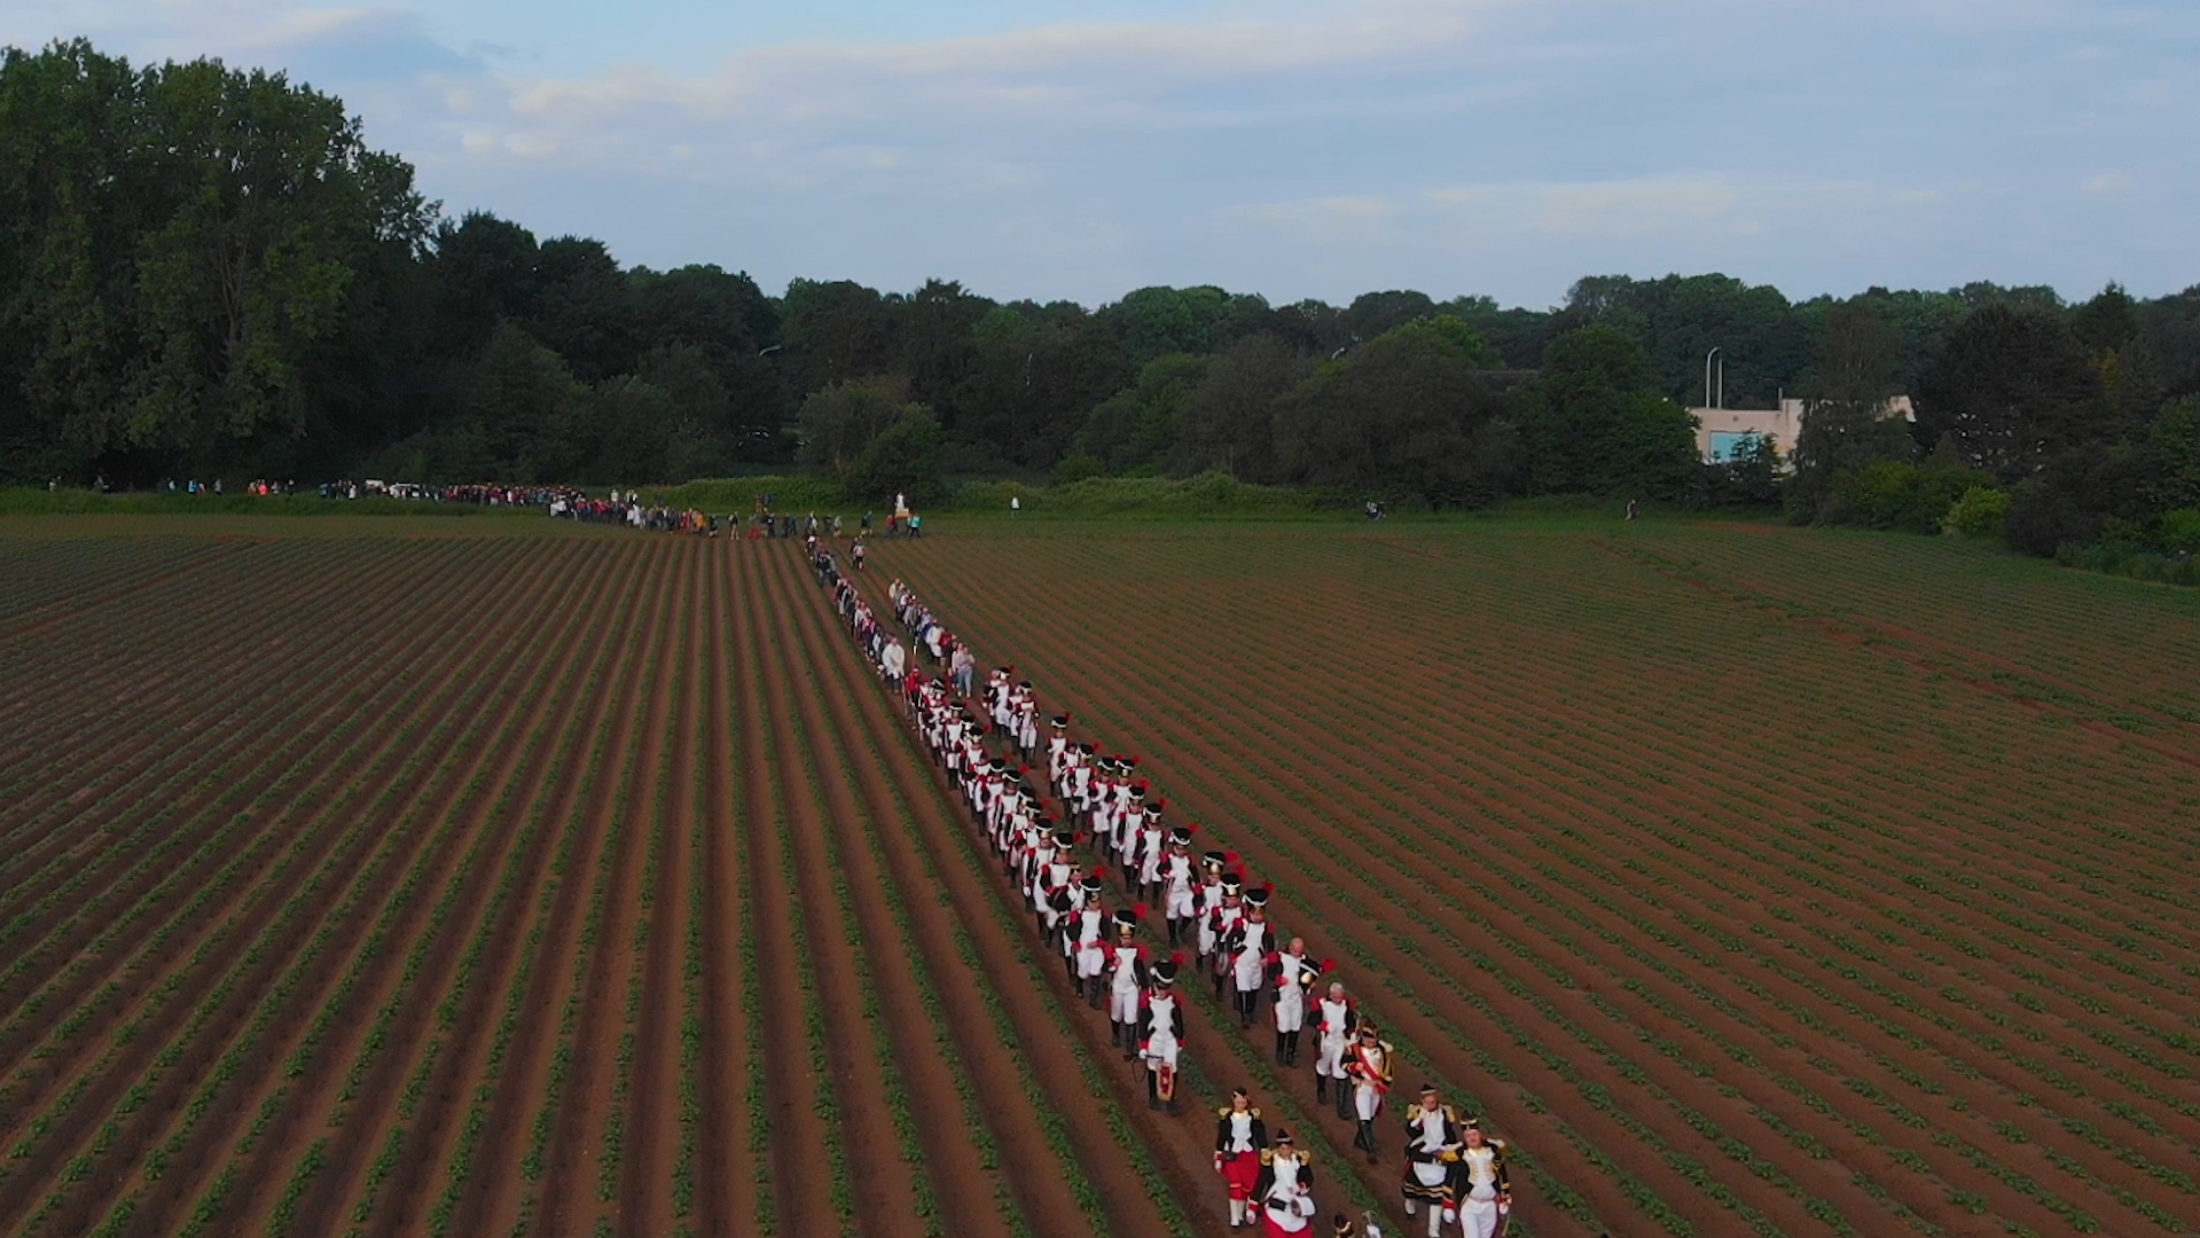 At the heart of the UNESCO-recognised Folkloric Marches